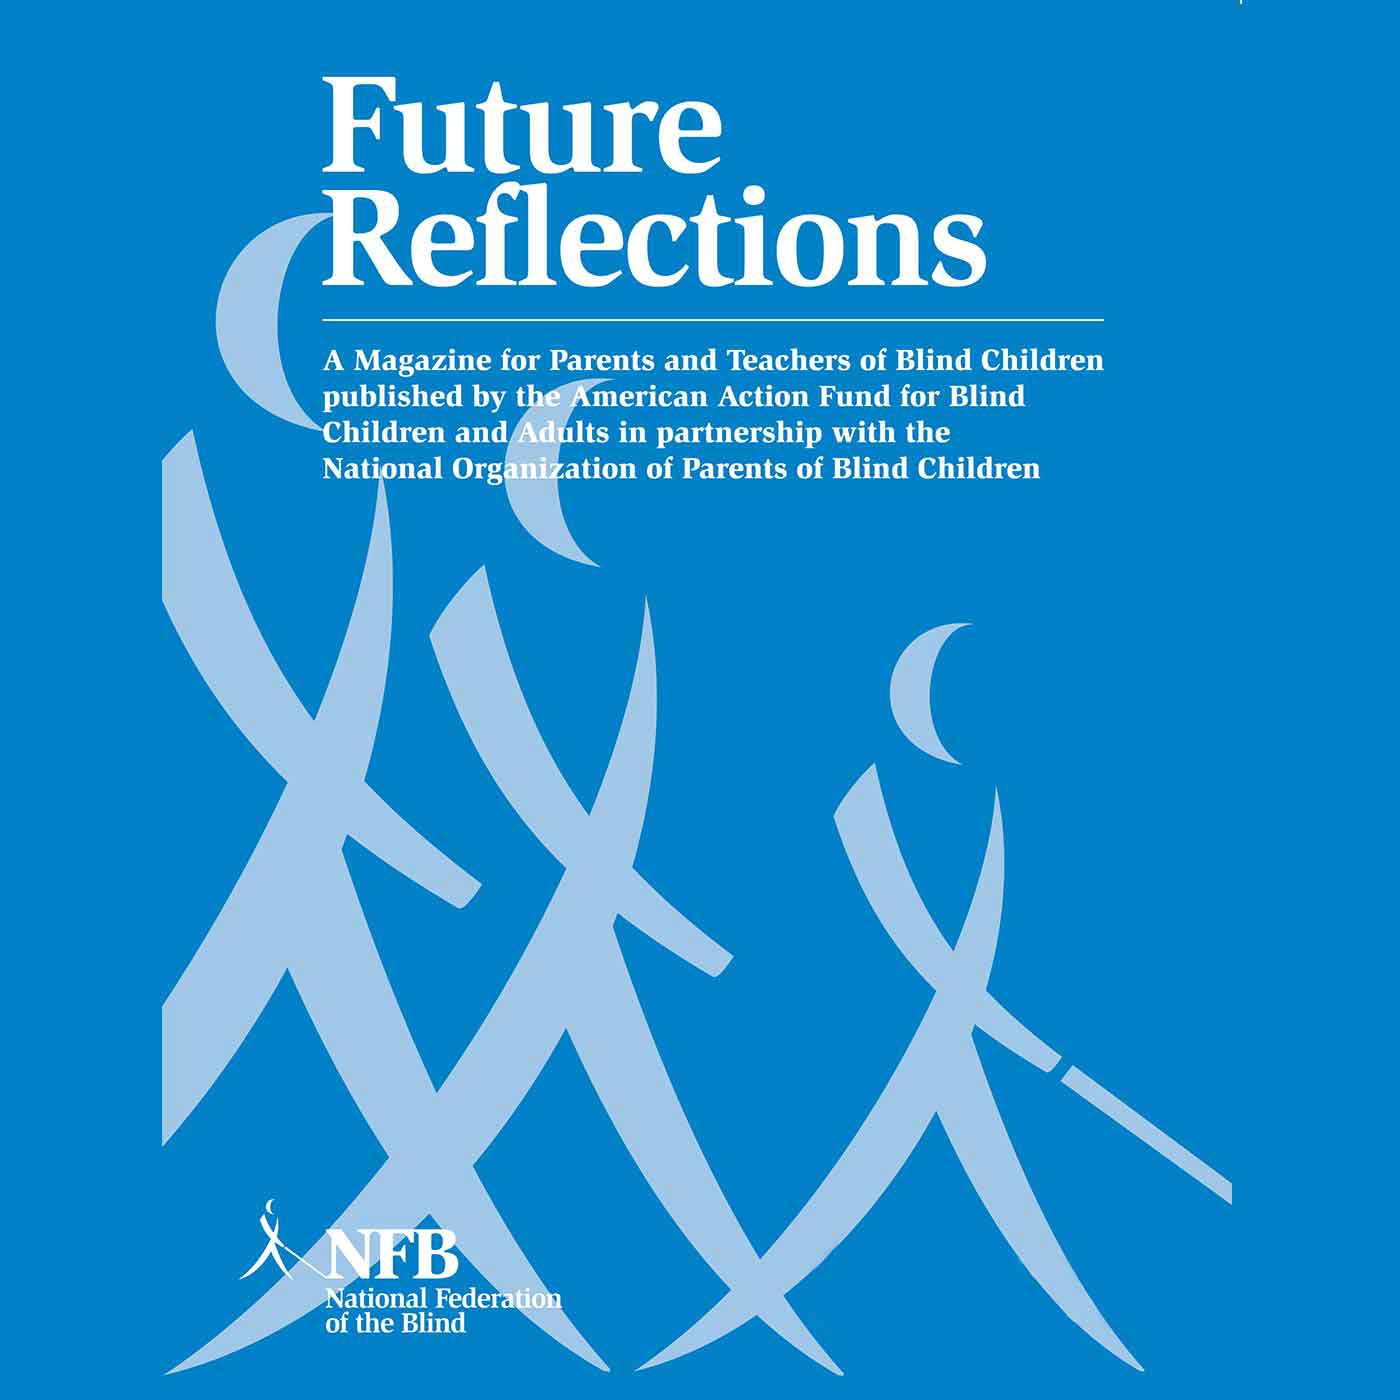 Future Reflections